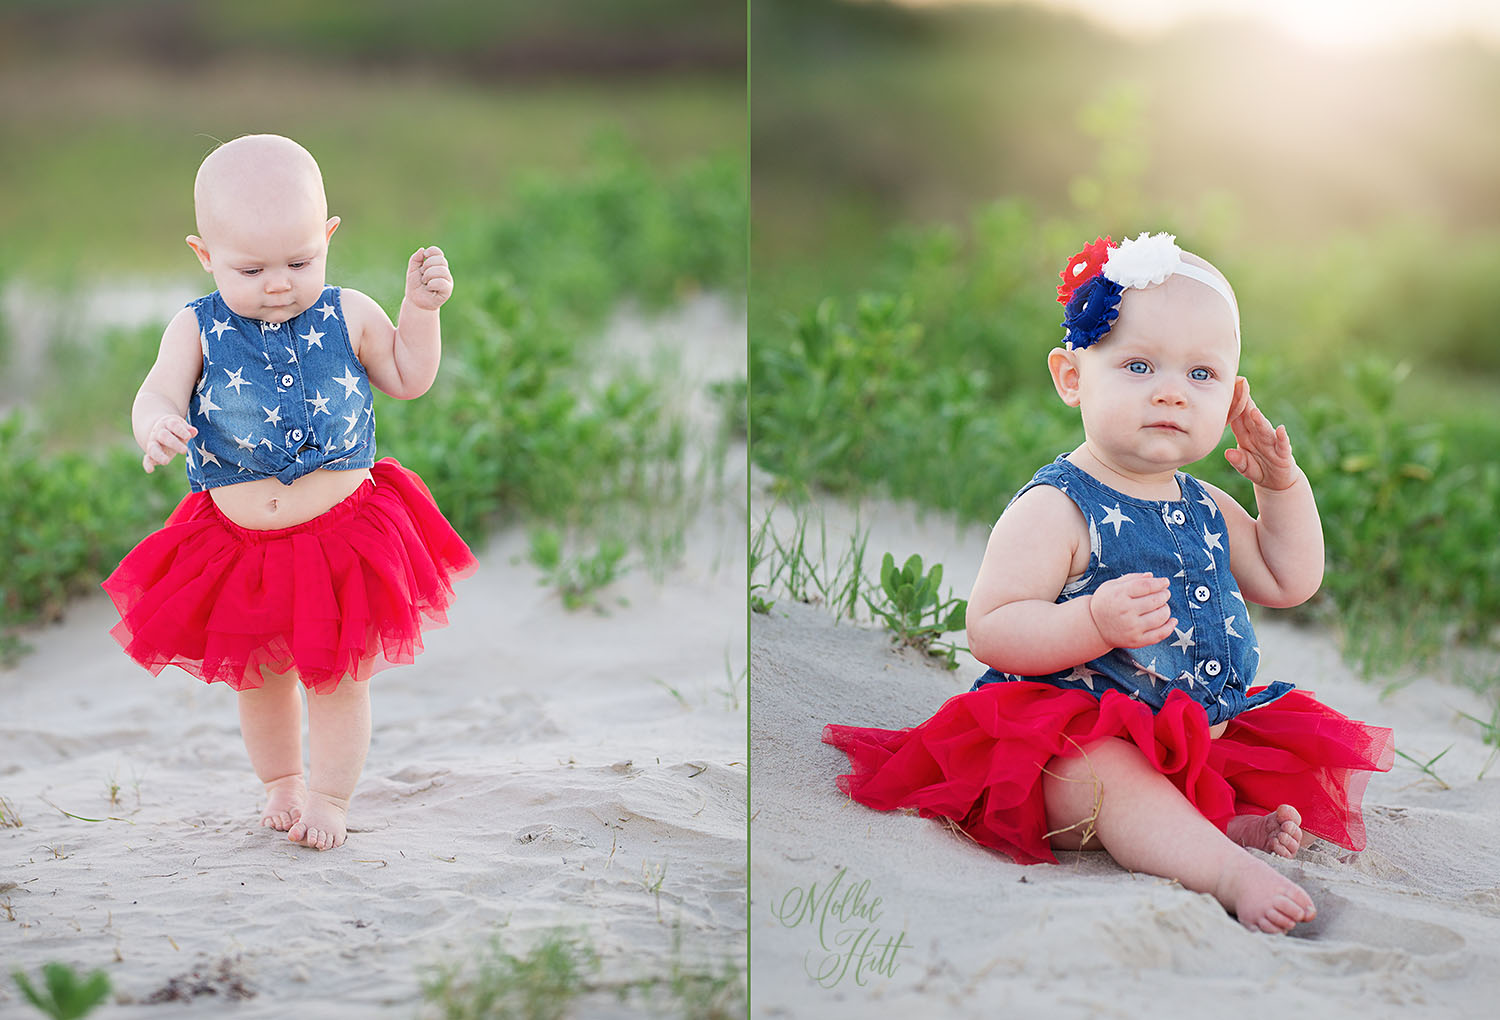 Collage of one year old baby sitting and walking on a beach dune wearing a patriotic red white and blue outfit with tutu